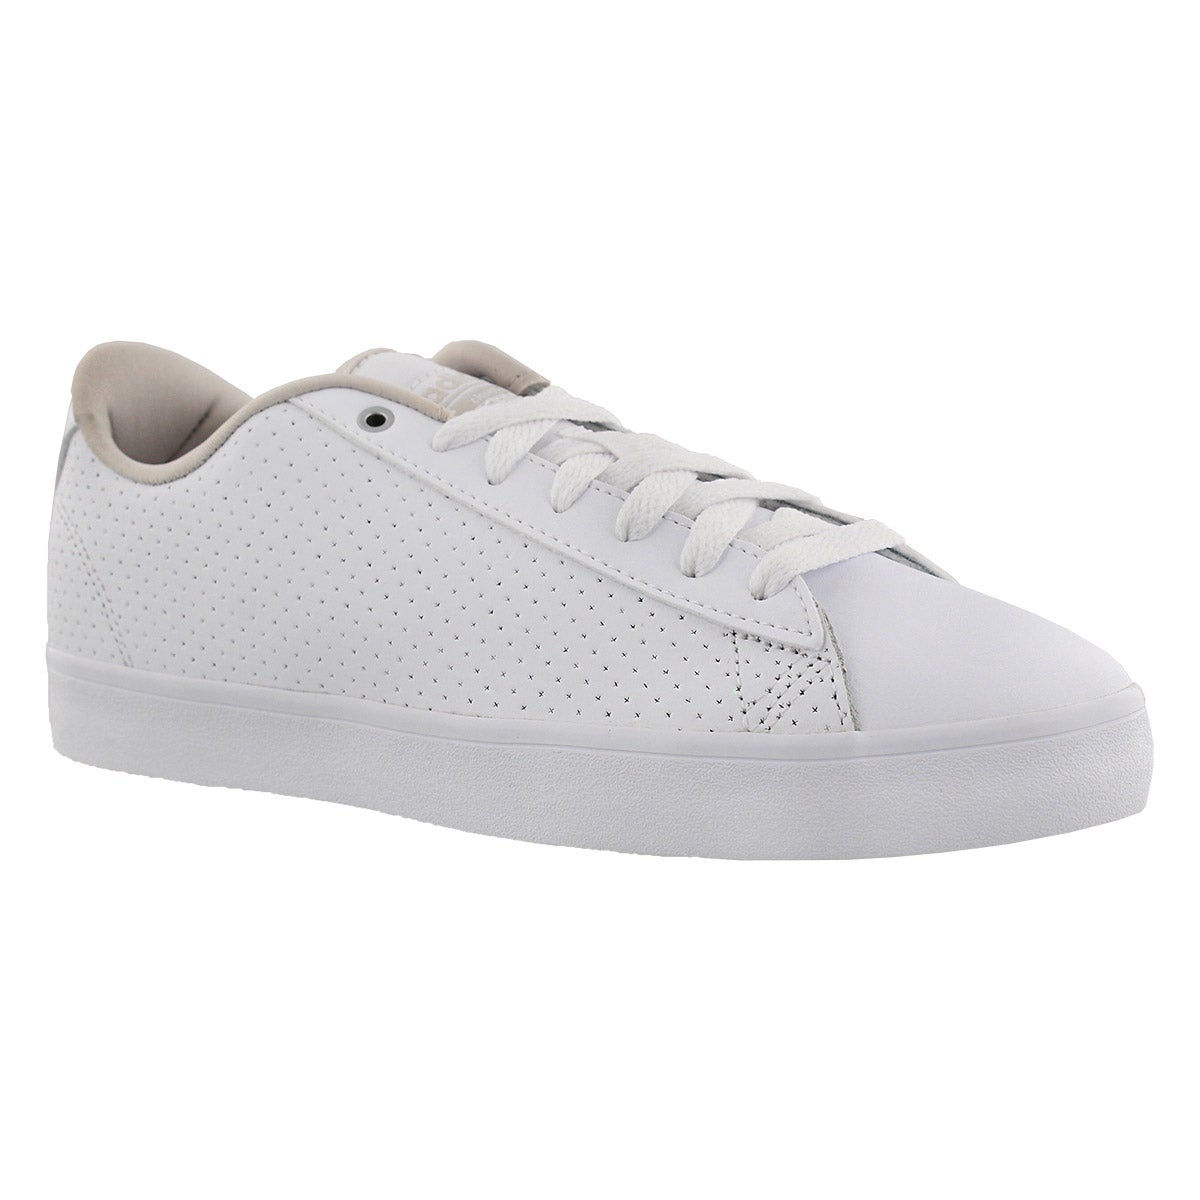 Women's CLOUDFOAM DAILY QT CLEAN white sneakers